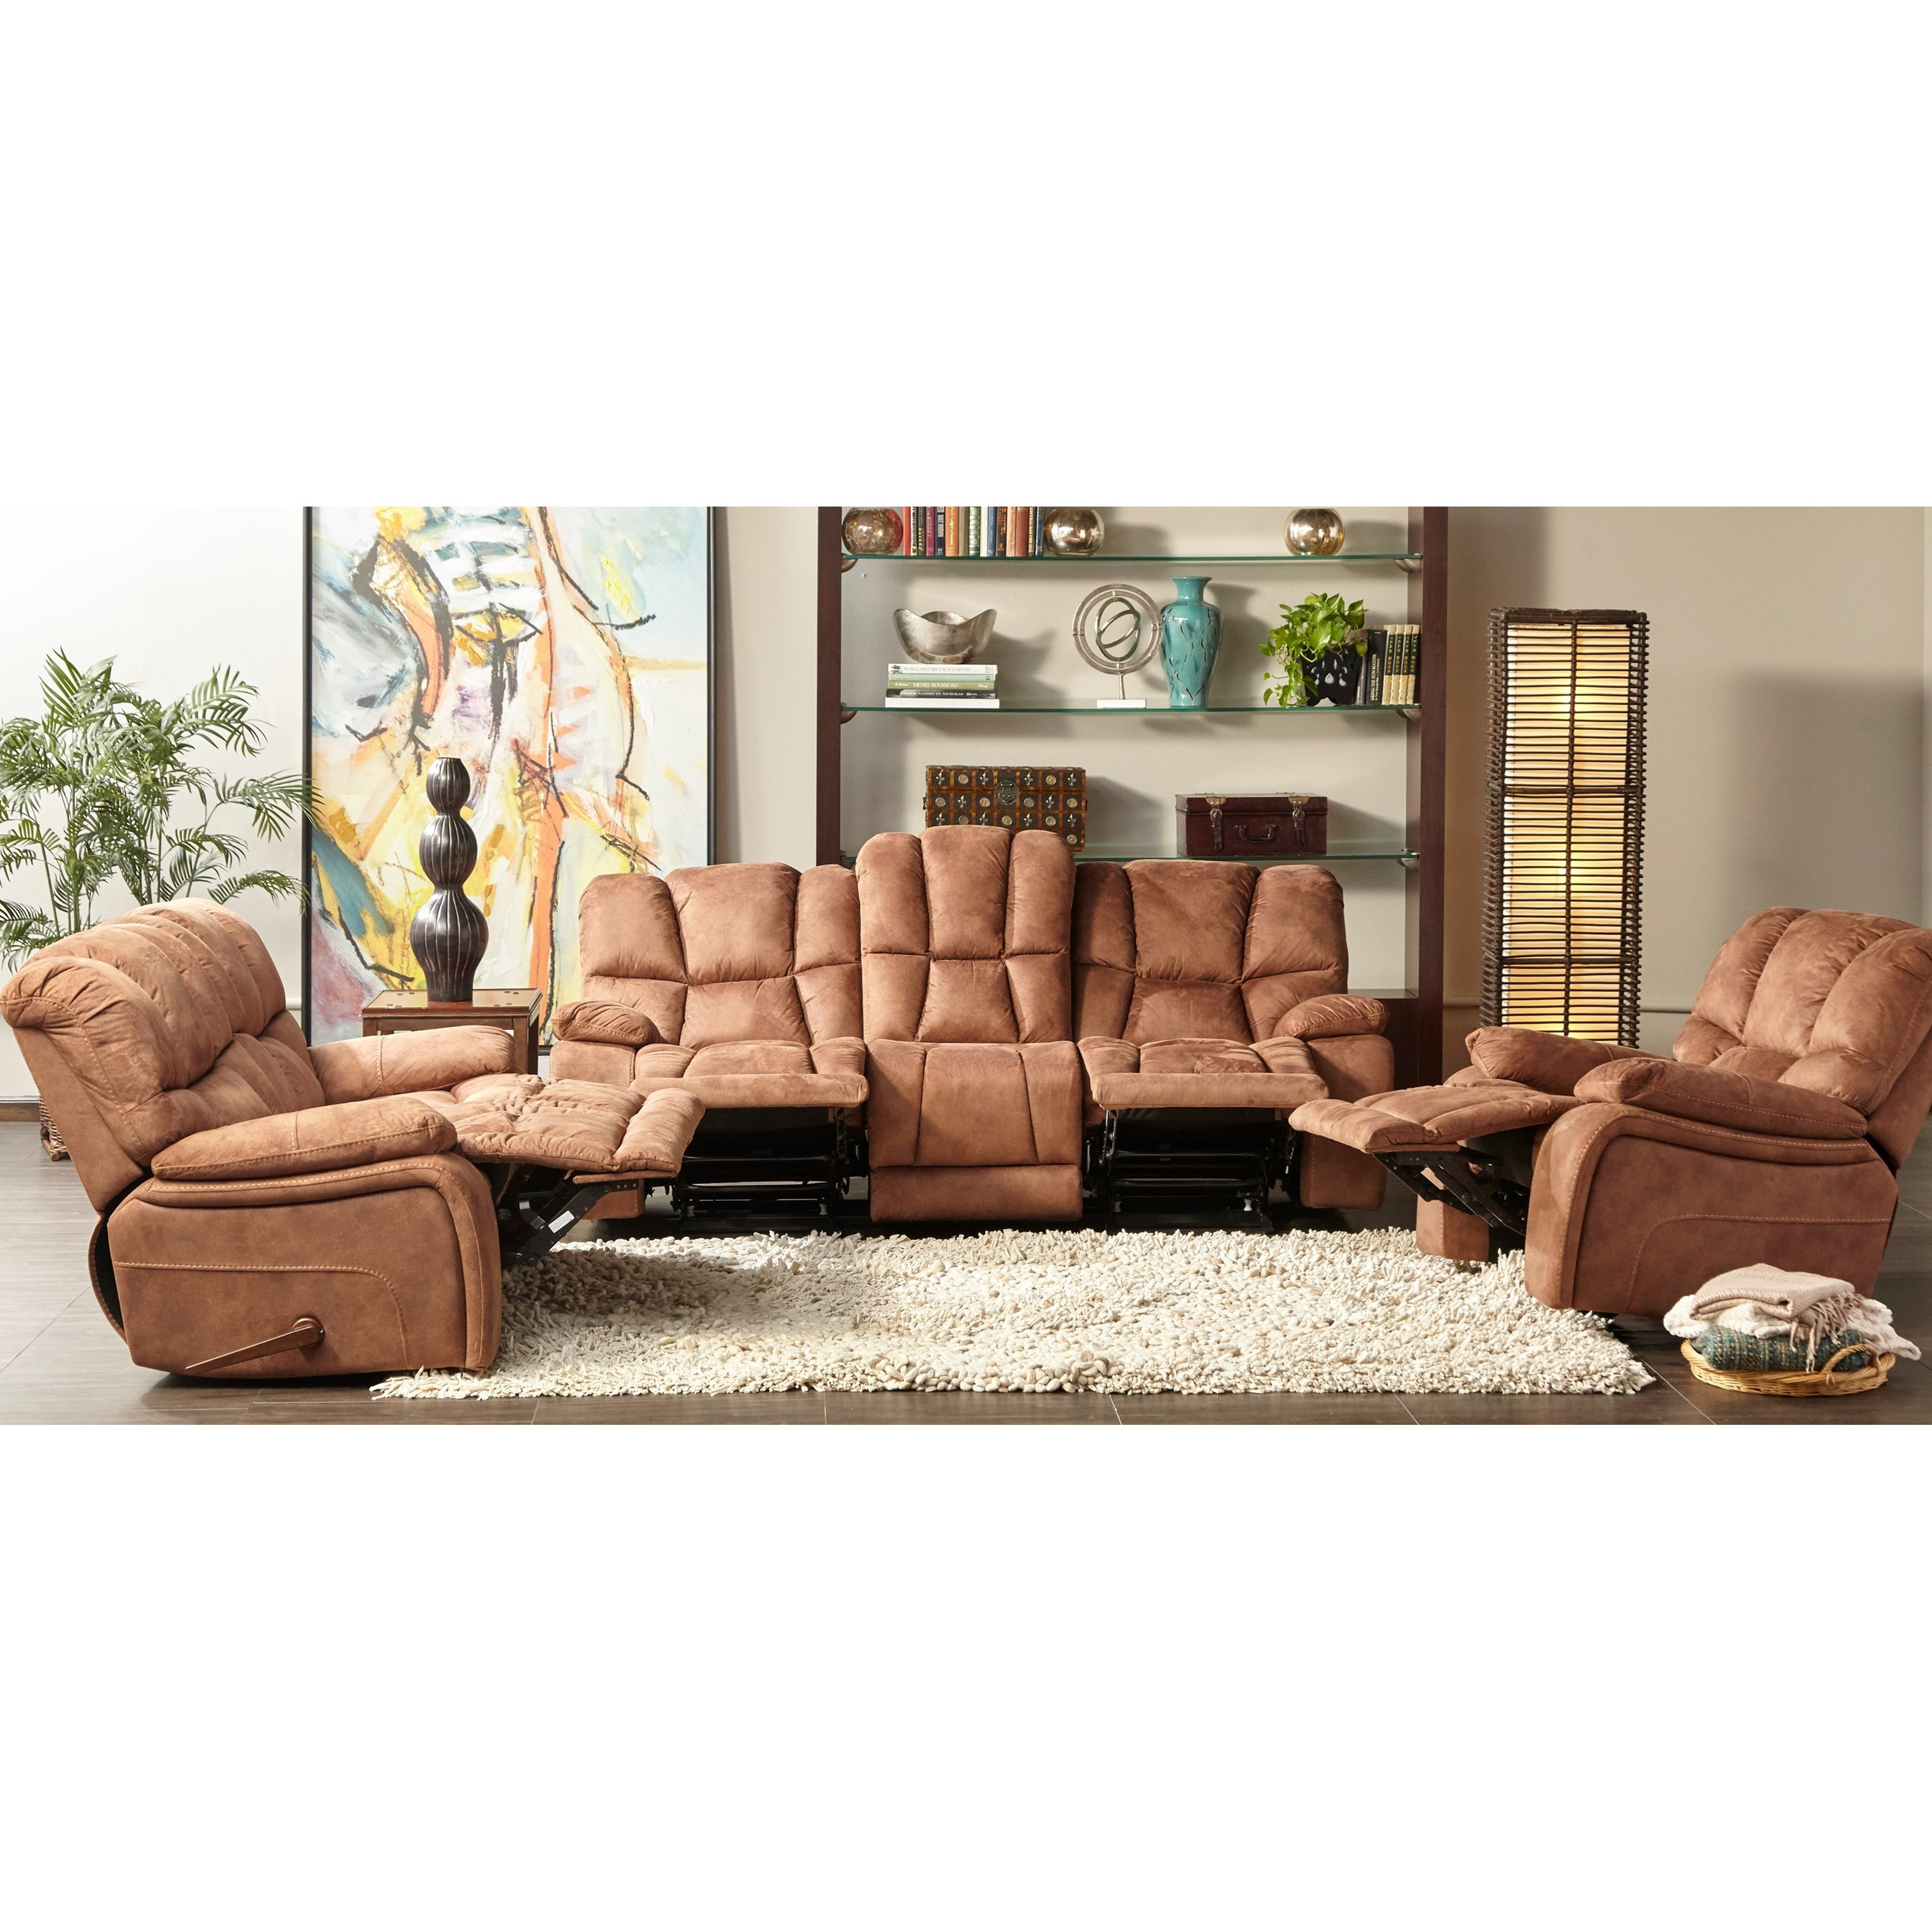 Cheers Sofa X1013m Qs X1013m L3 2k T Dual Glider Motion Sofa Great American Home Store